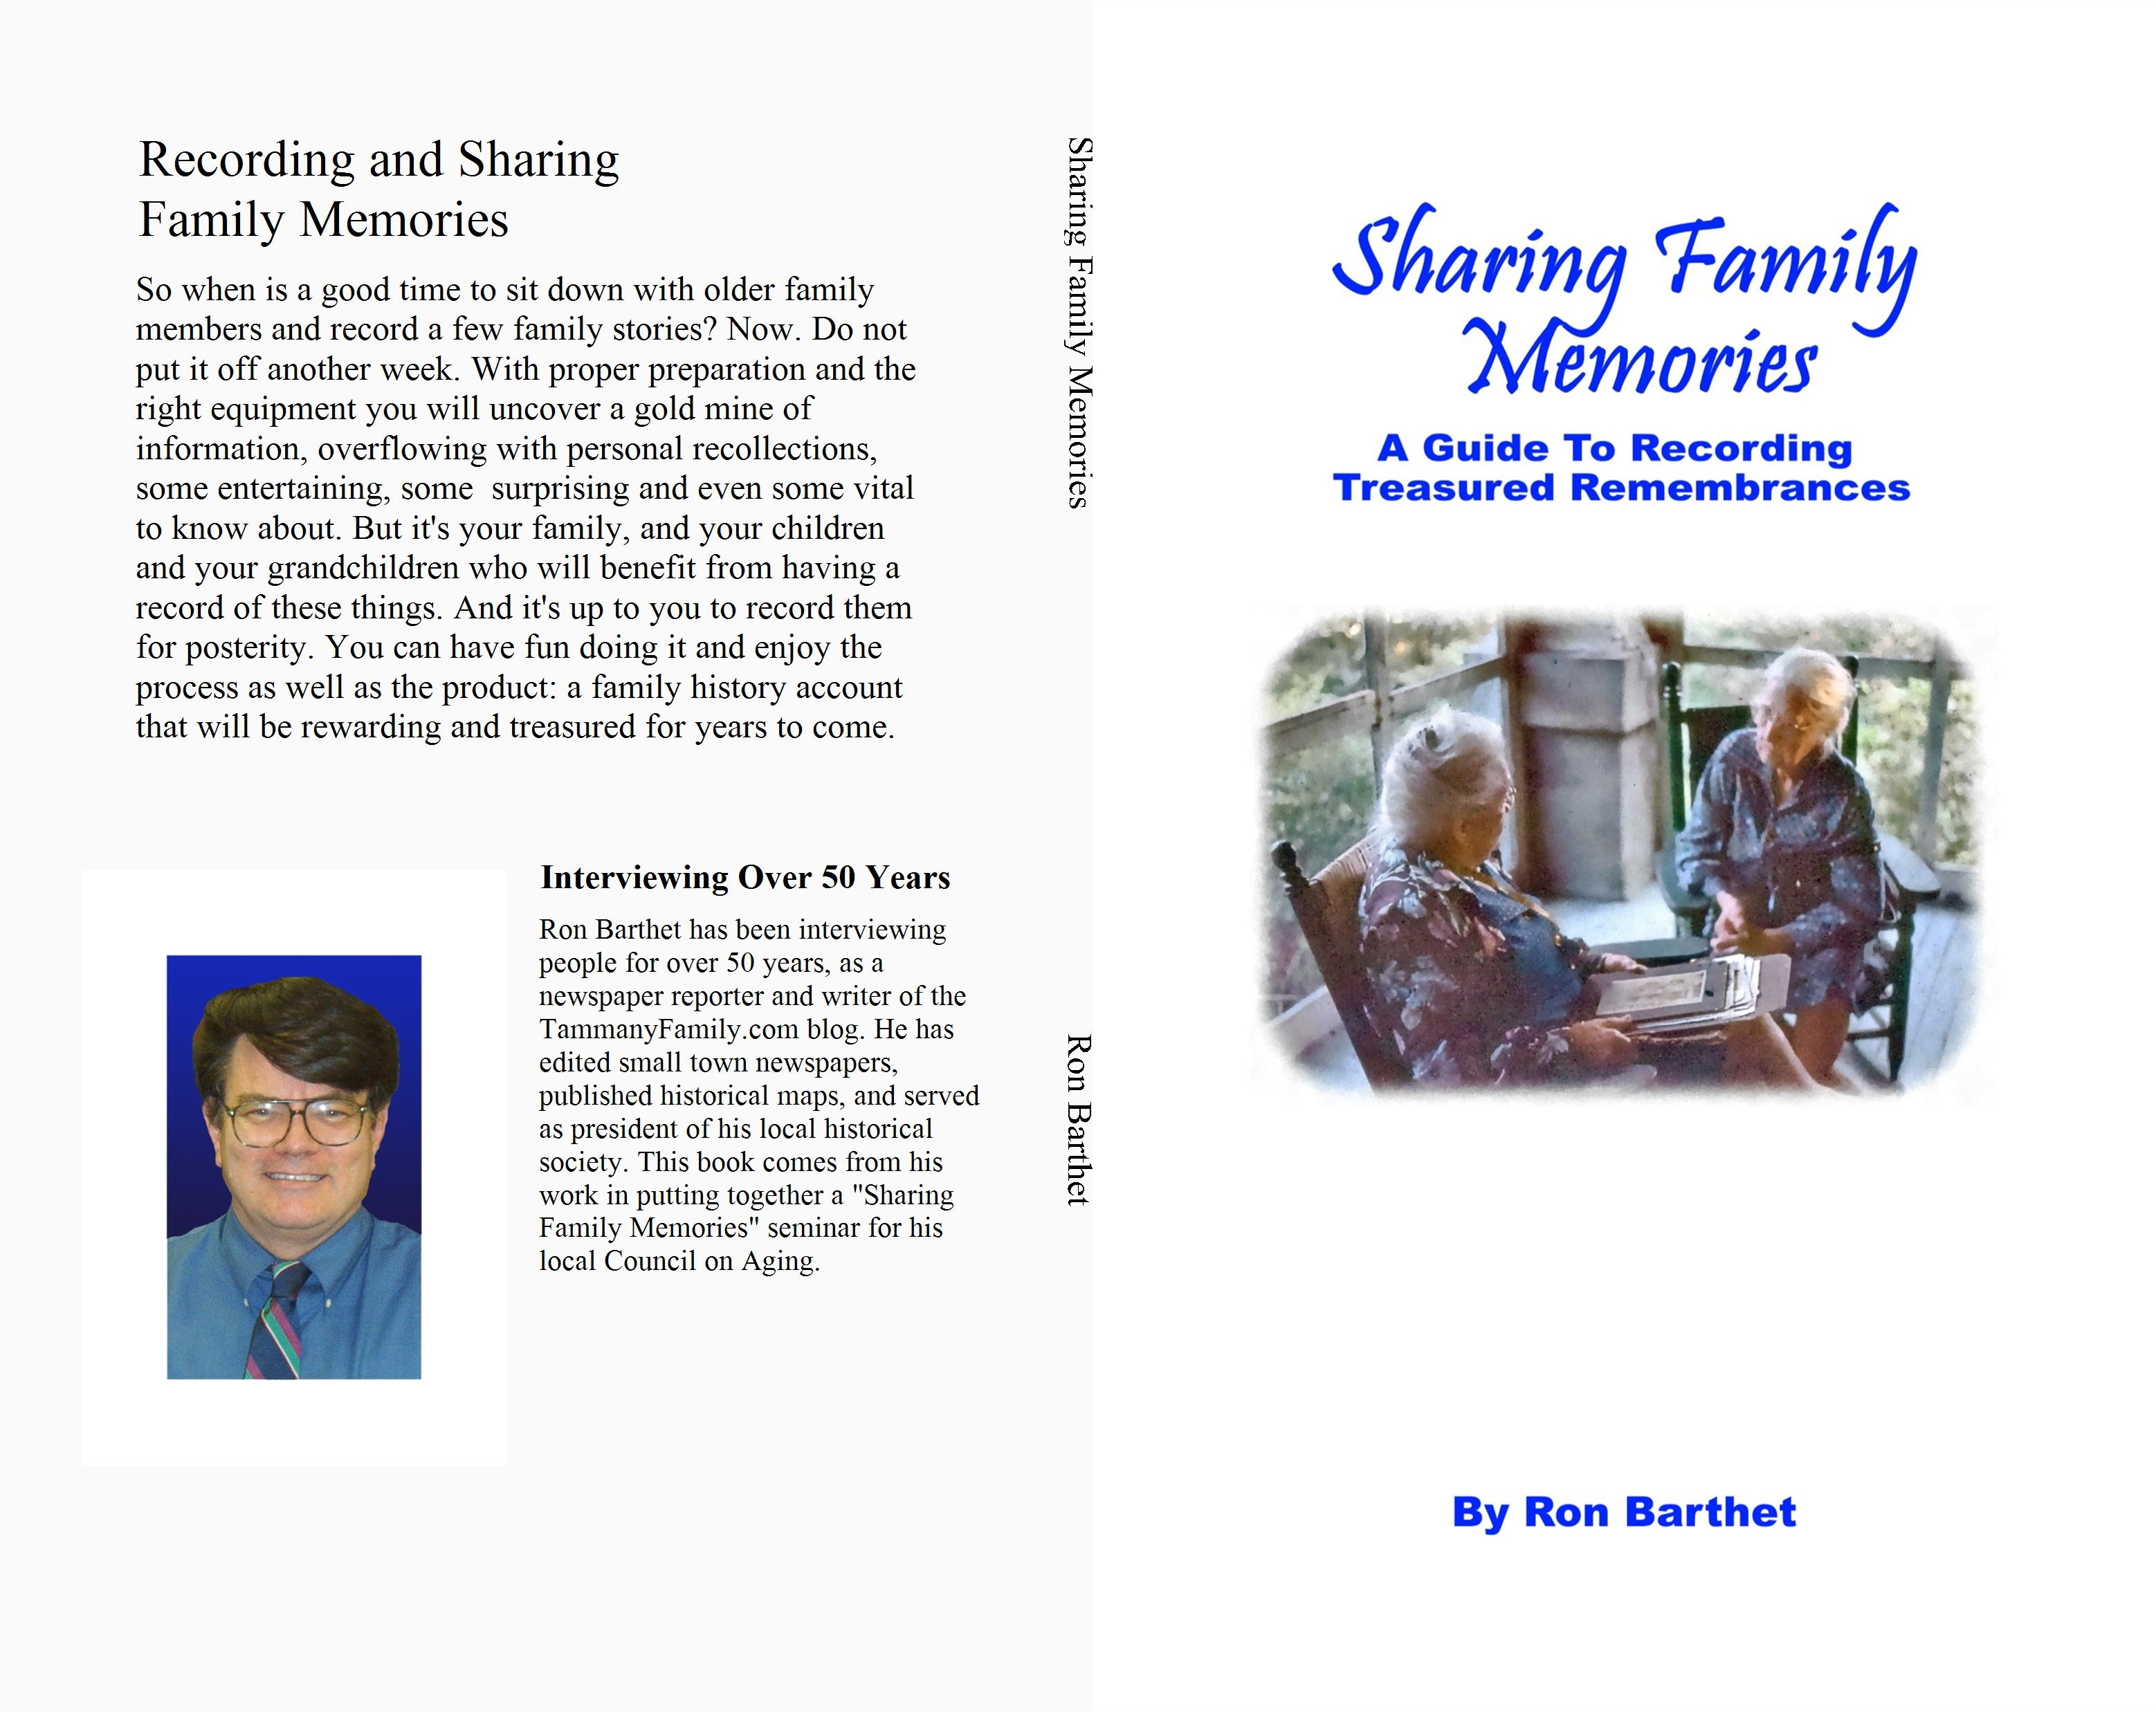 Sharing Family Memories: A Guide To Recording Treasured Remembrances cover image